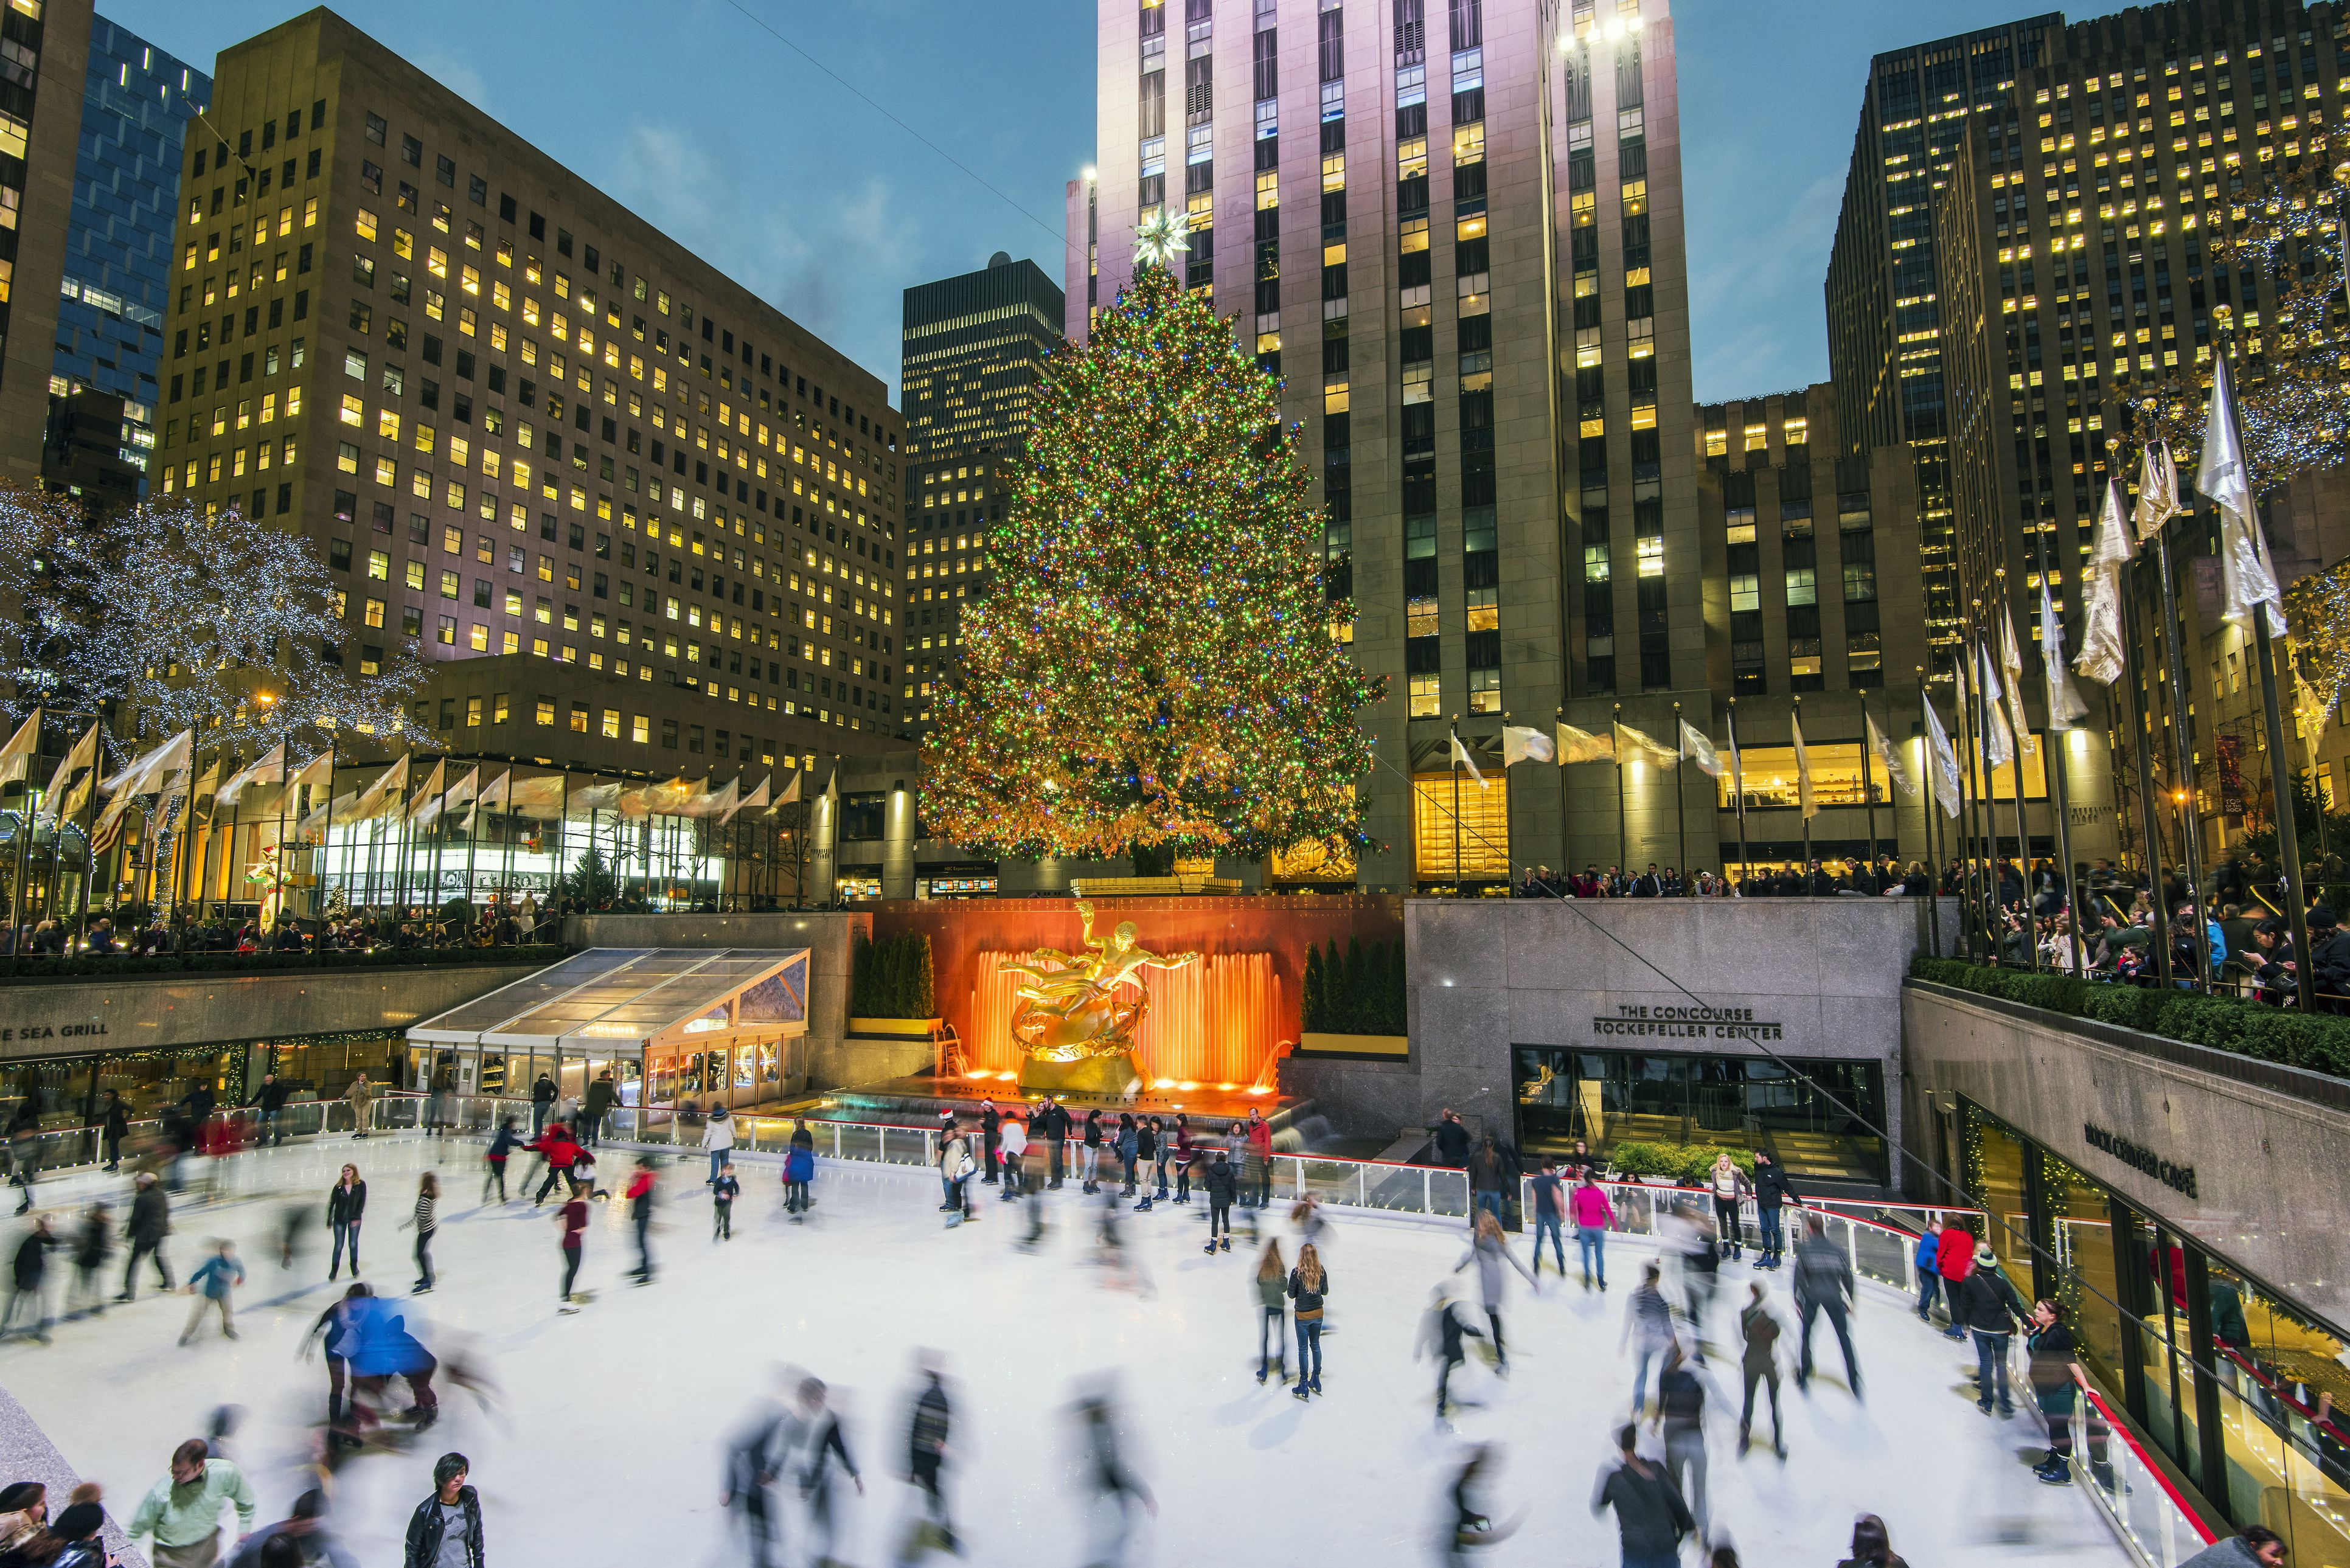 The Best Christmas Trees in NYC, 2017